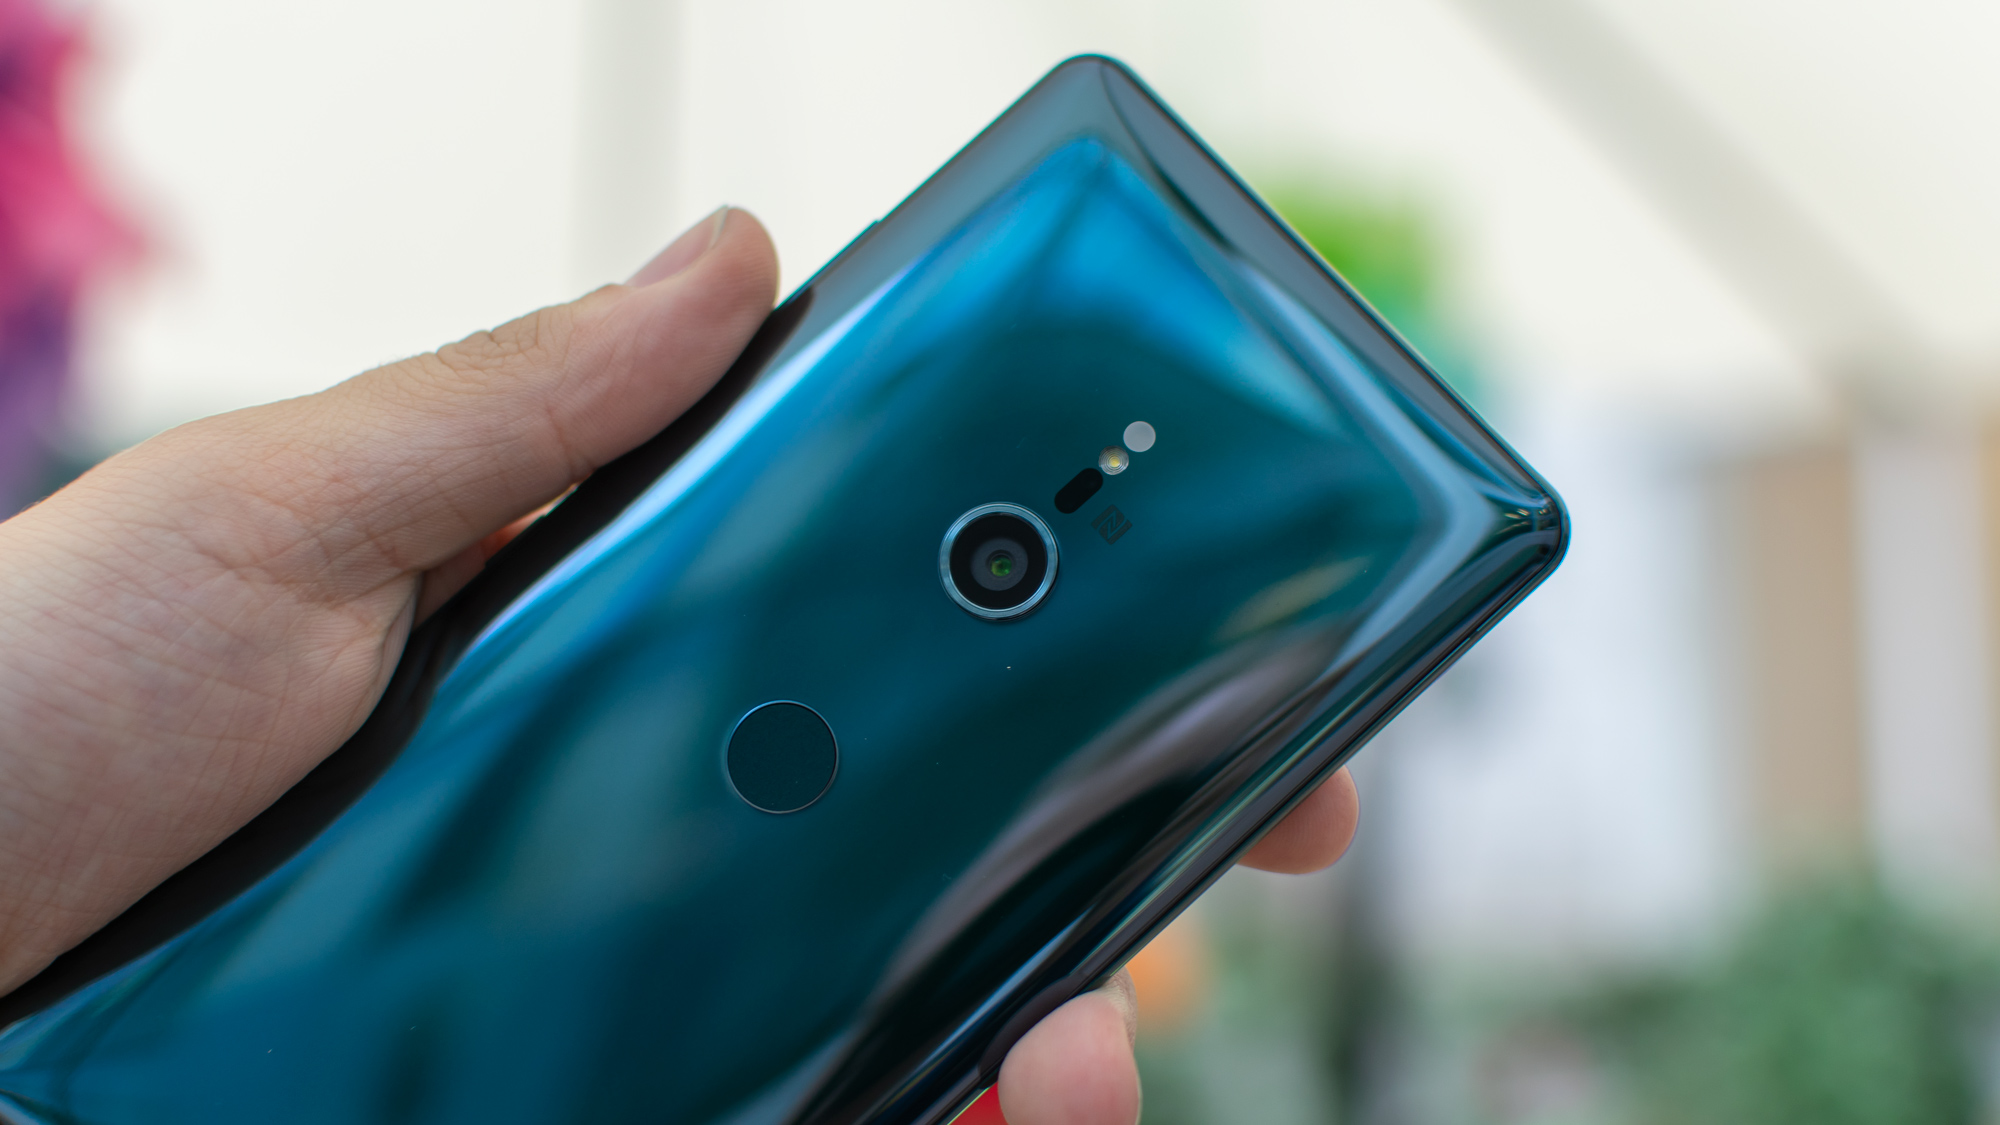 Sony launches new flagship Xperia XZ3 smartphone with curved glass display